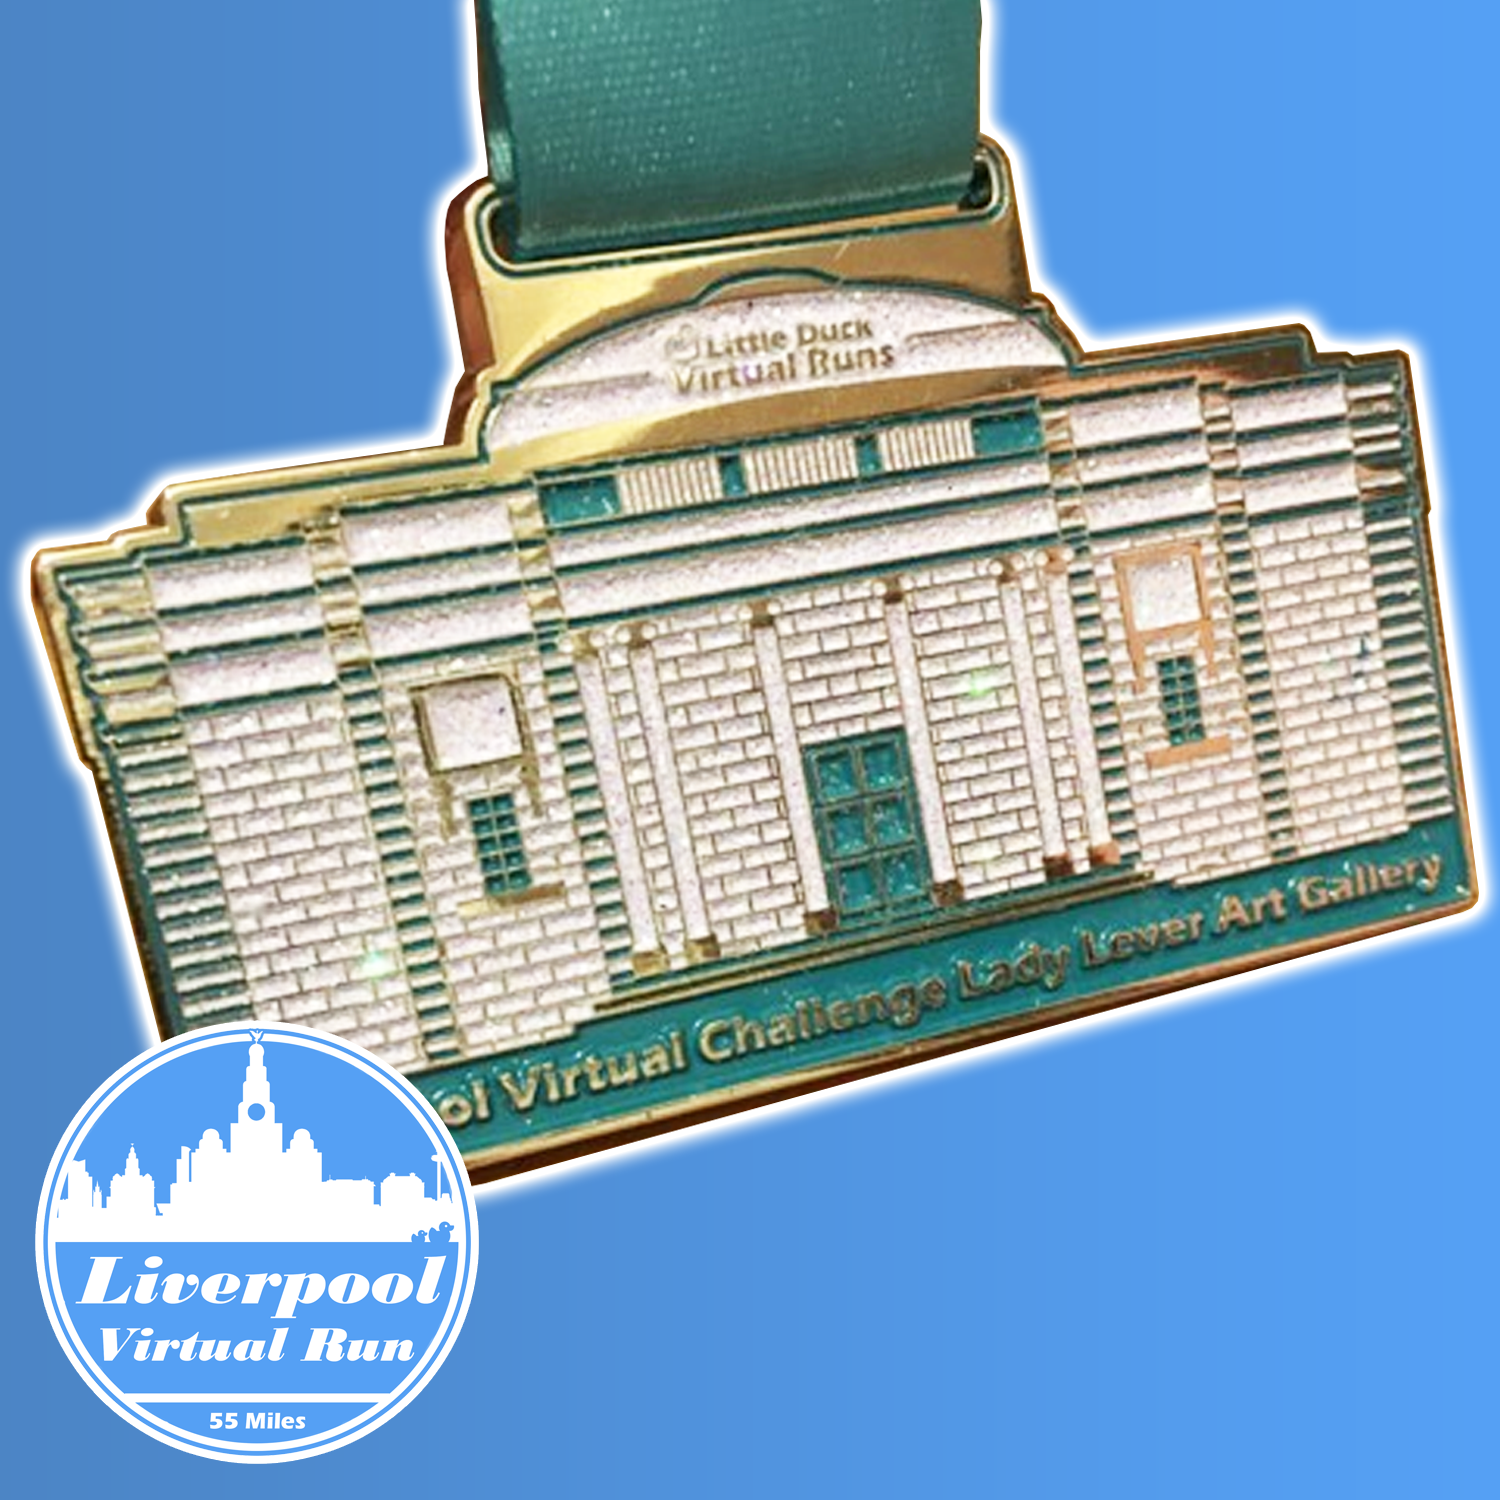 Liverpool 55 Mile Virtual Run (you don't have to do the 55 miles in one go, phew!)